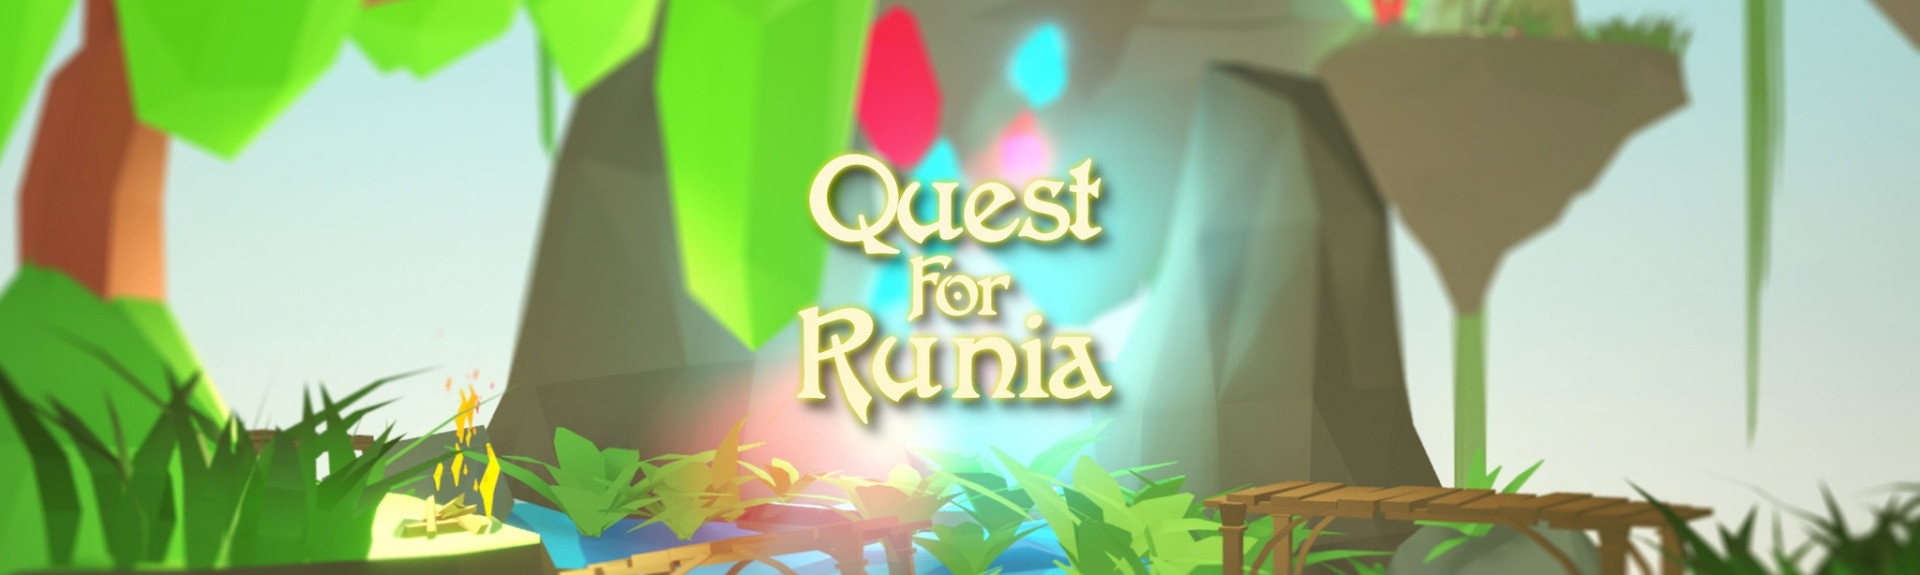 Quest for Runia